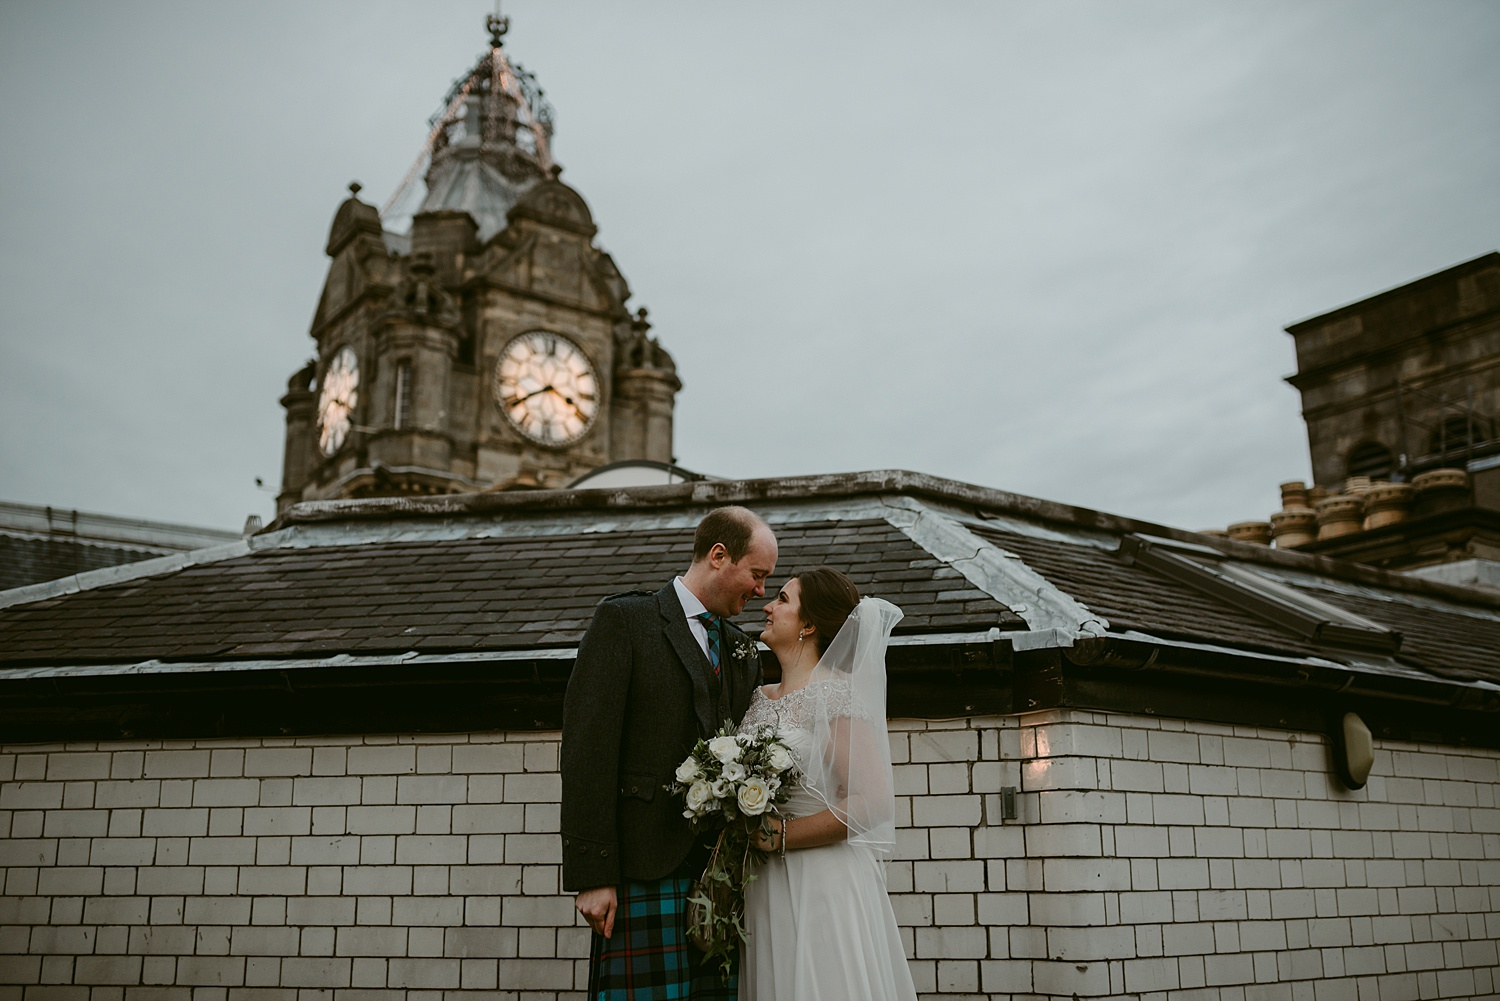 Claire-Fleck-Scottish-wedding-photography-2017__0051.jpg